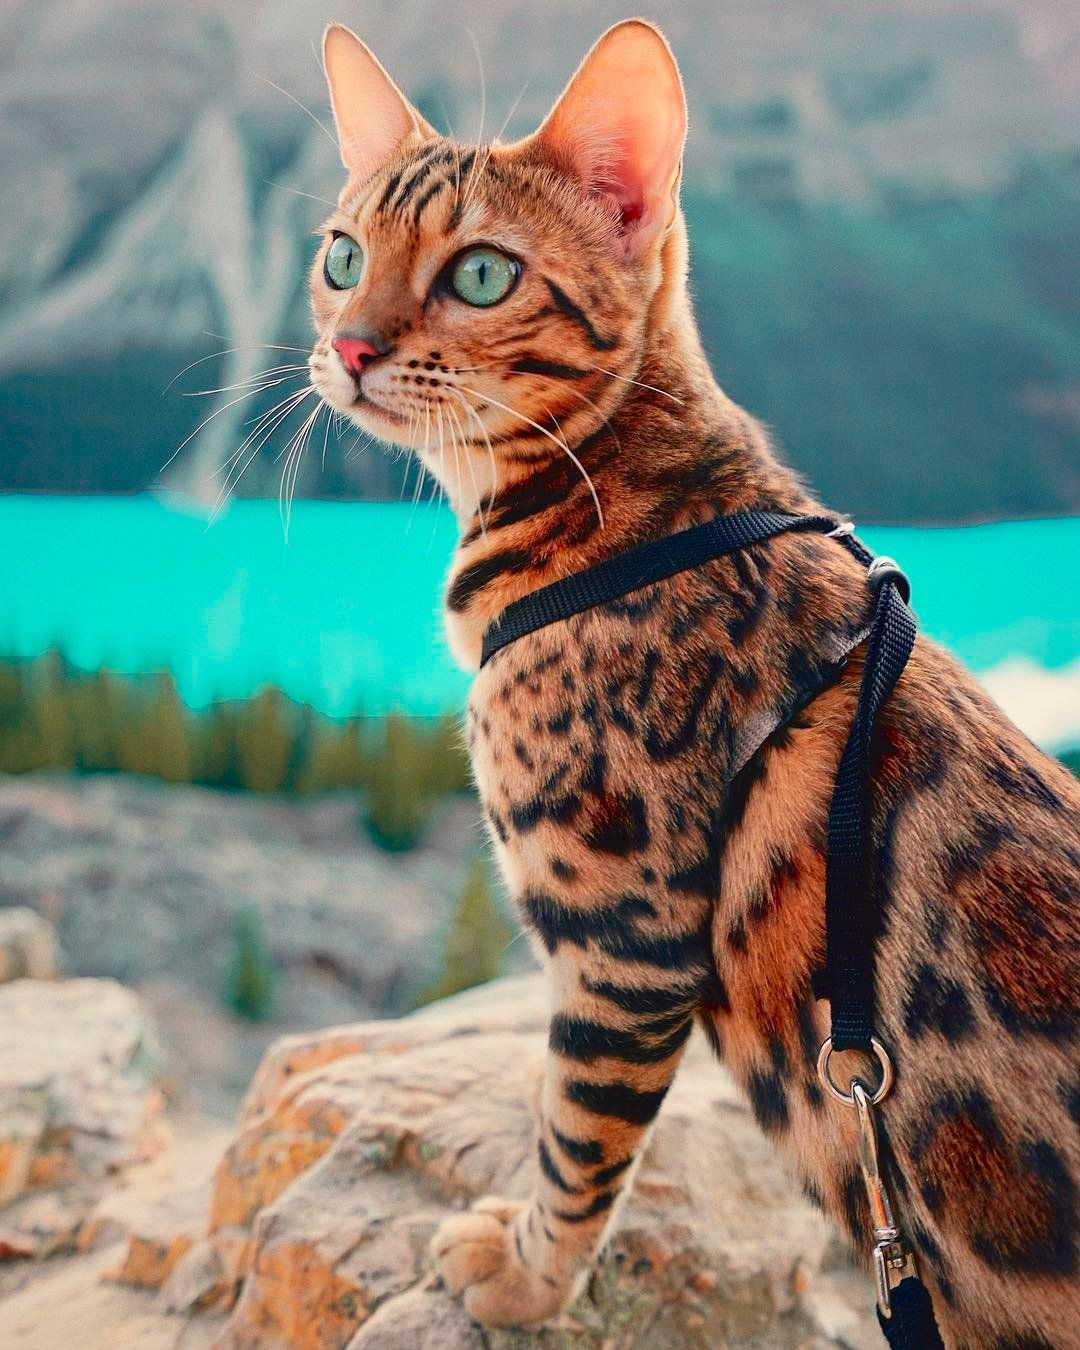 The Adventures Of Suki The Cat Daily Design Inspiration For Creatives Inspiration Grid In 2020 Cat Breeds Bengal Cat Cats